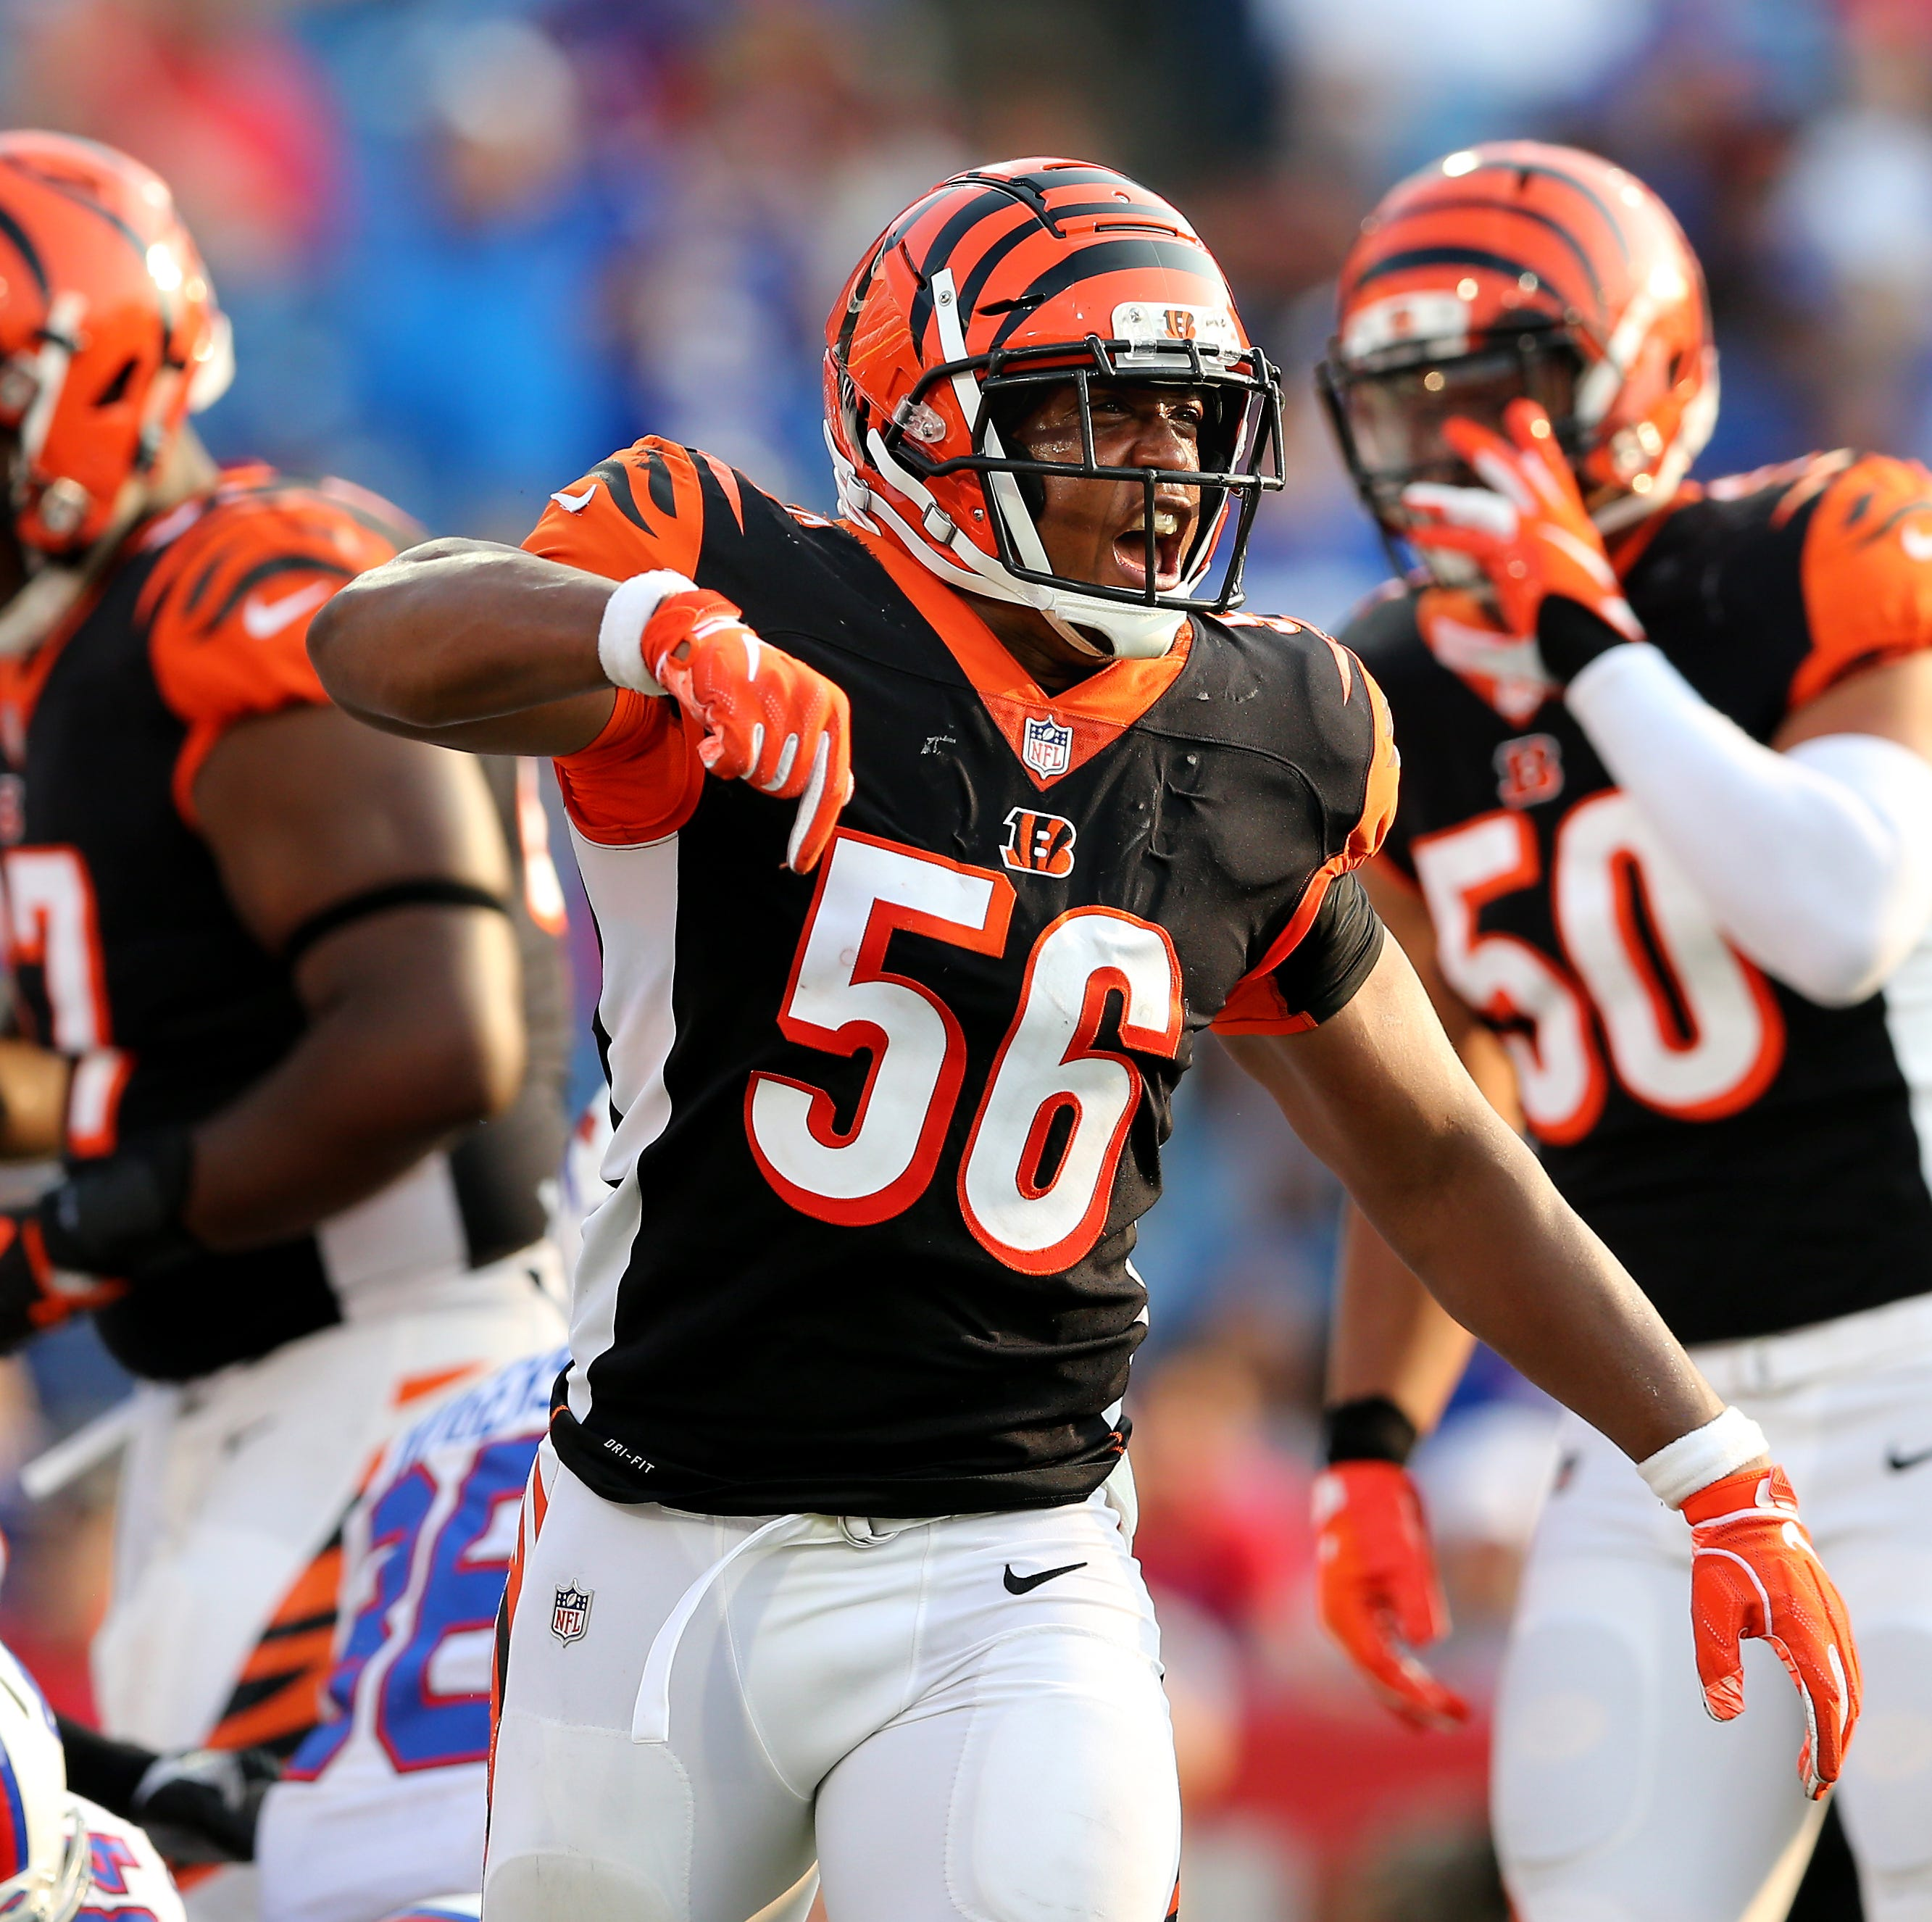 Cincinnati Bengals live: Chargers up 14-3 in second quarter